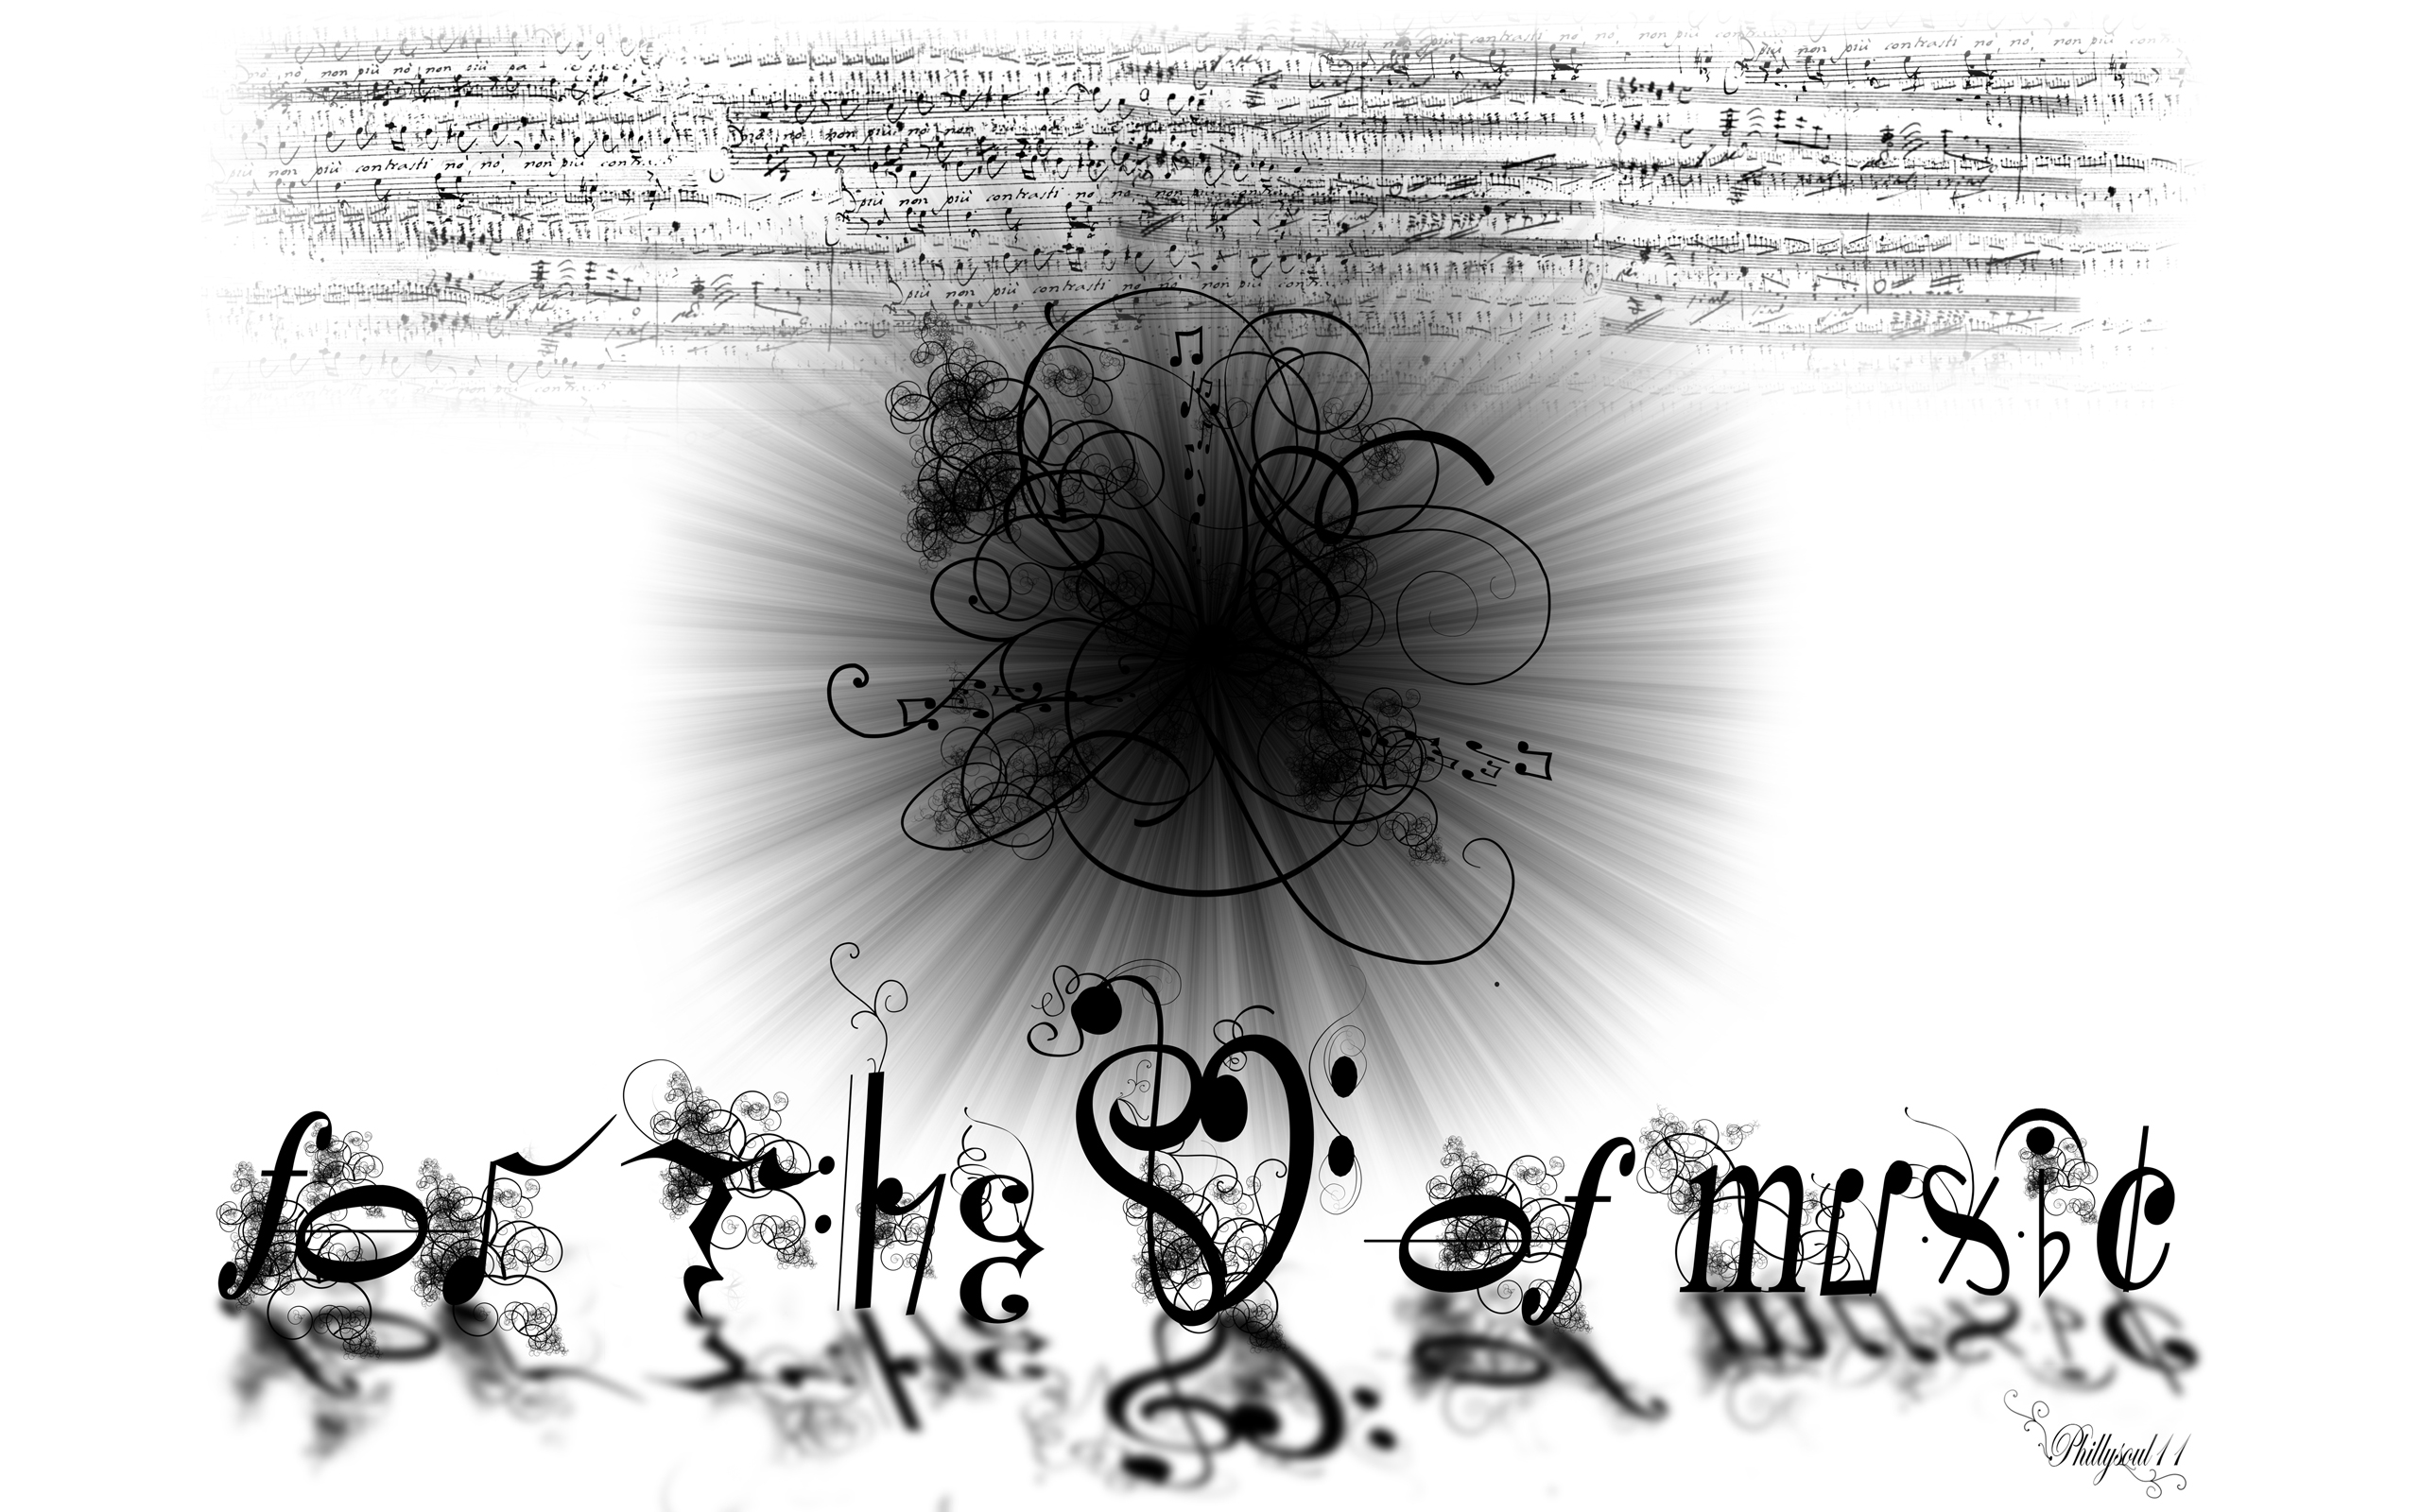 For The Love of Music 288.33 Kb